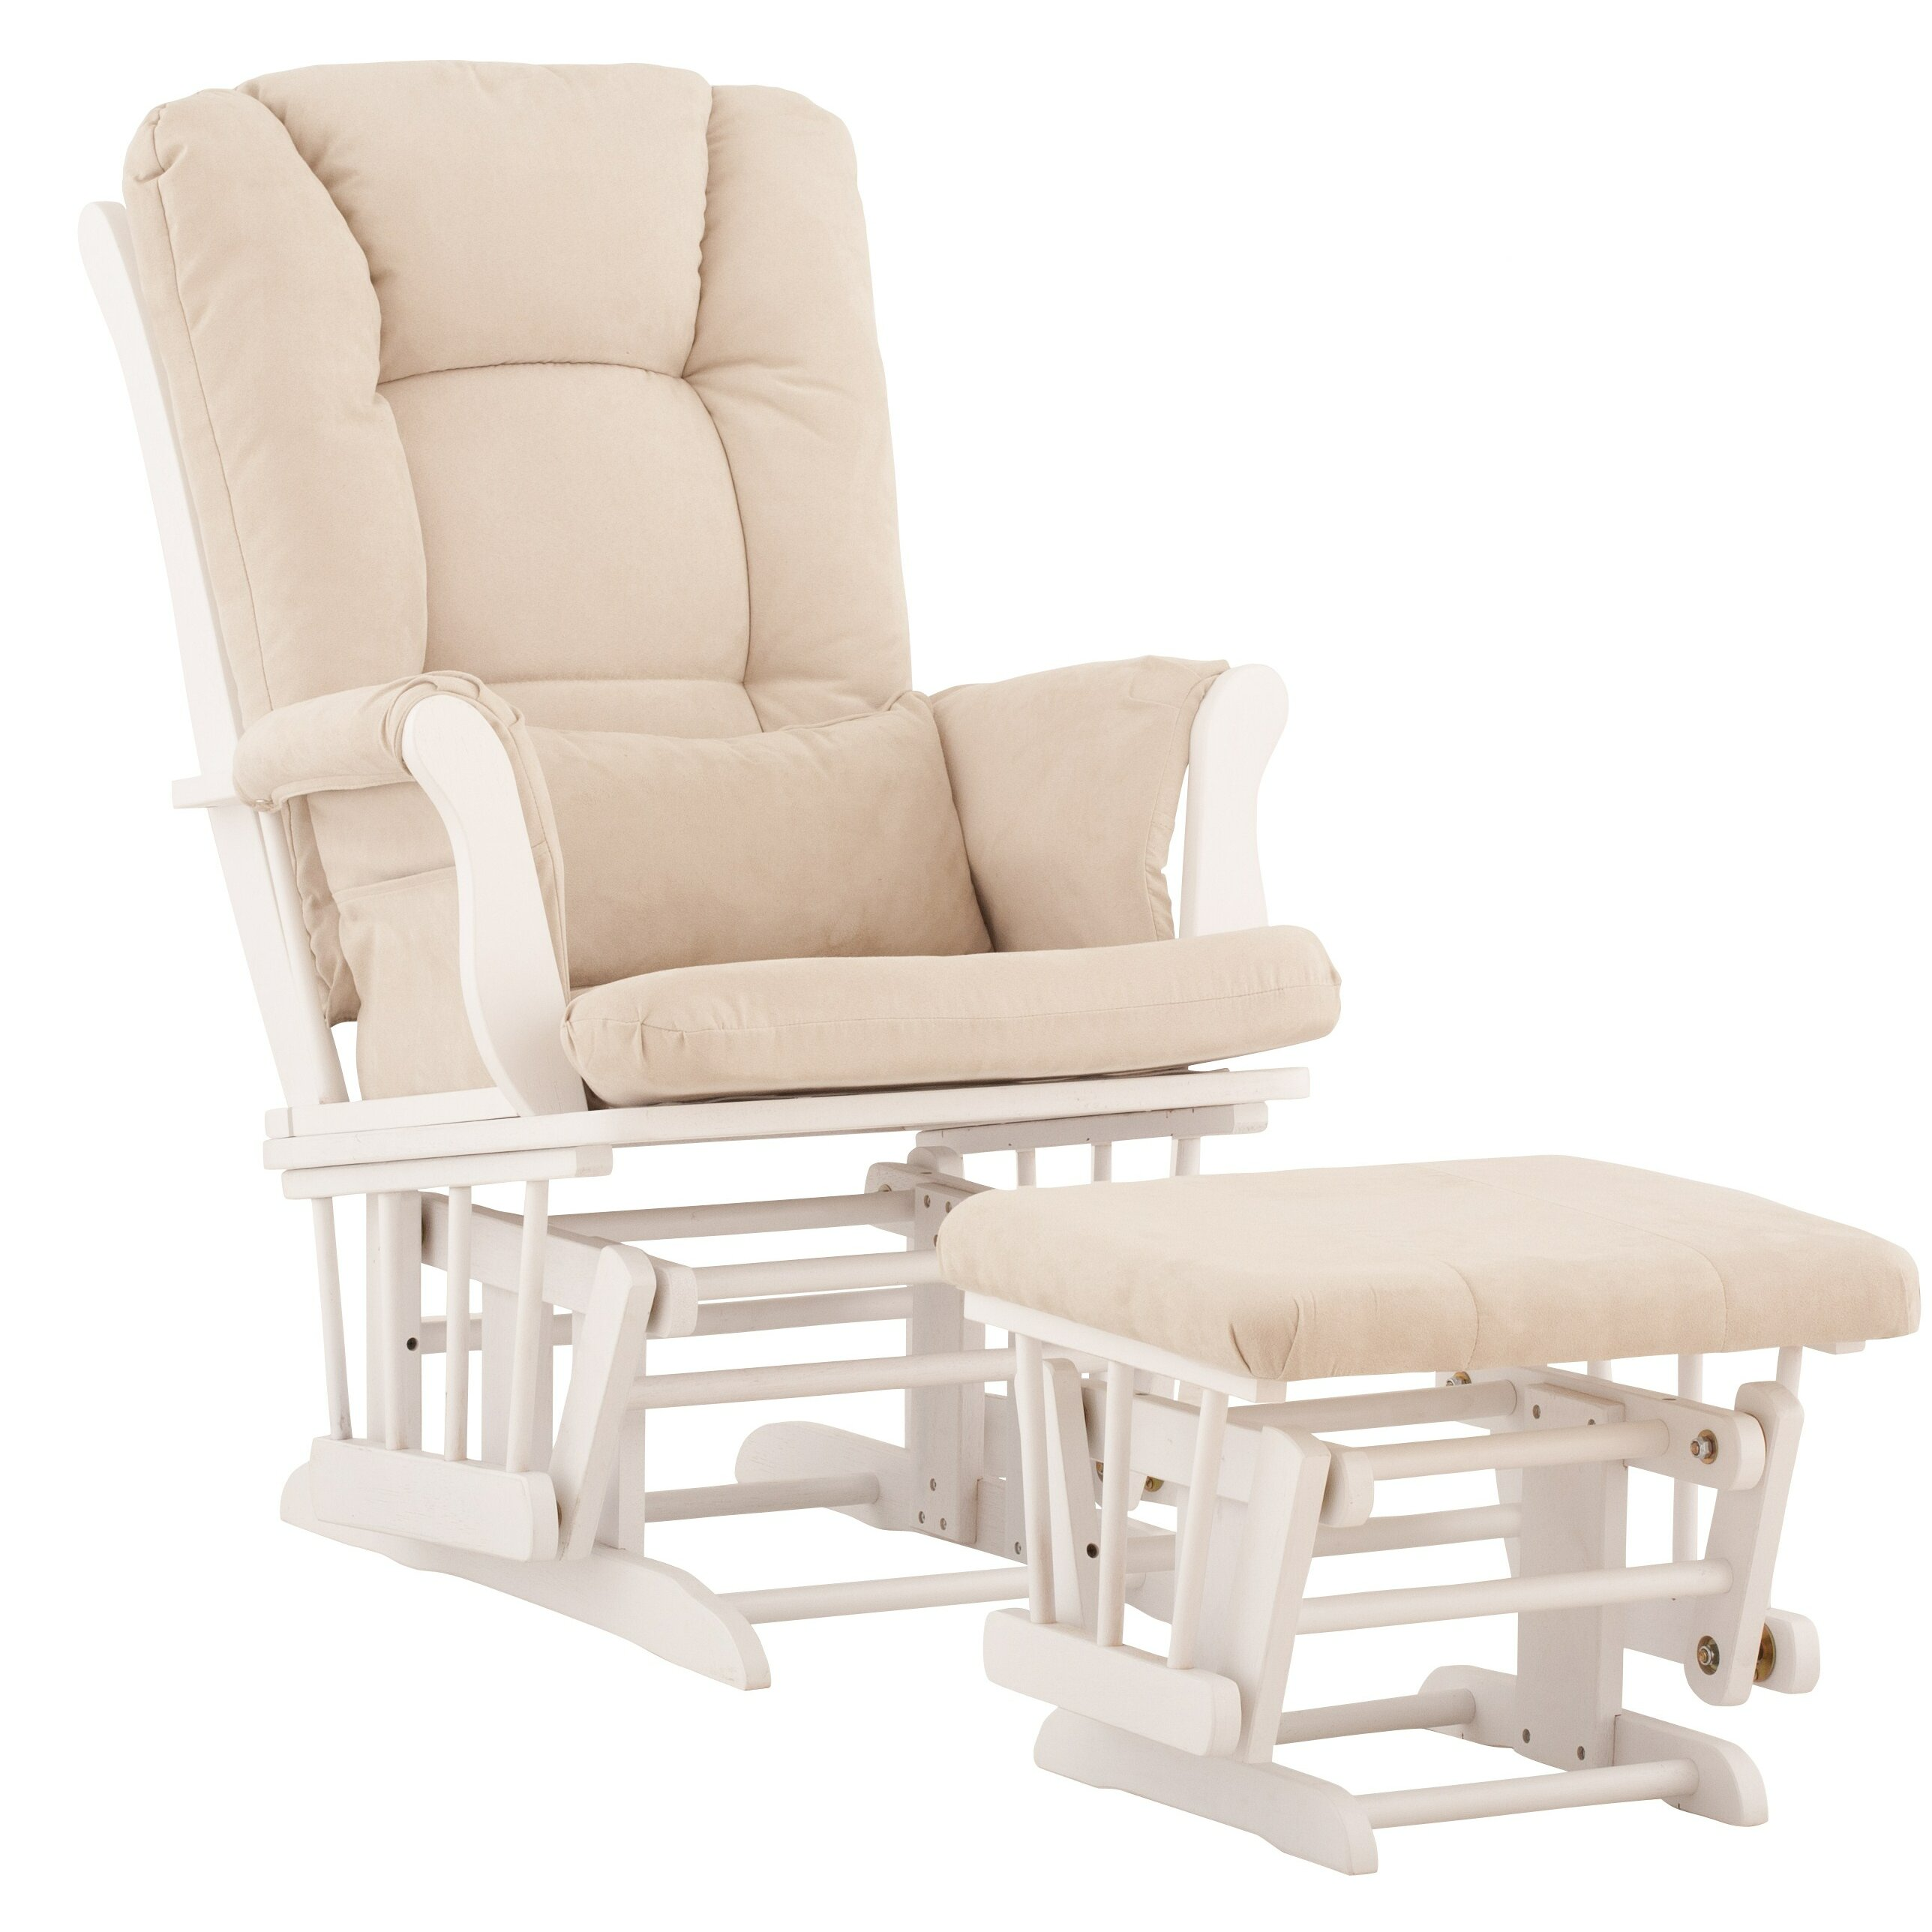 Storkcraft tuscany glider and ottoman reviews for Stork craft tuscany glider rocking chair ottoman